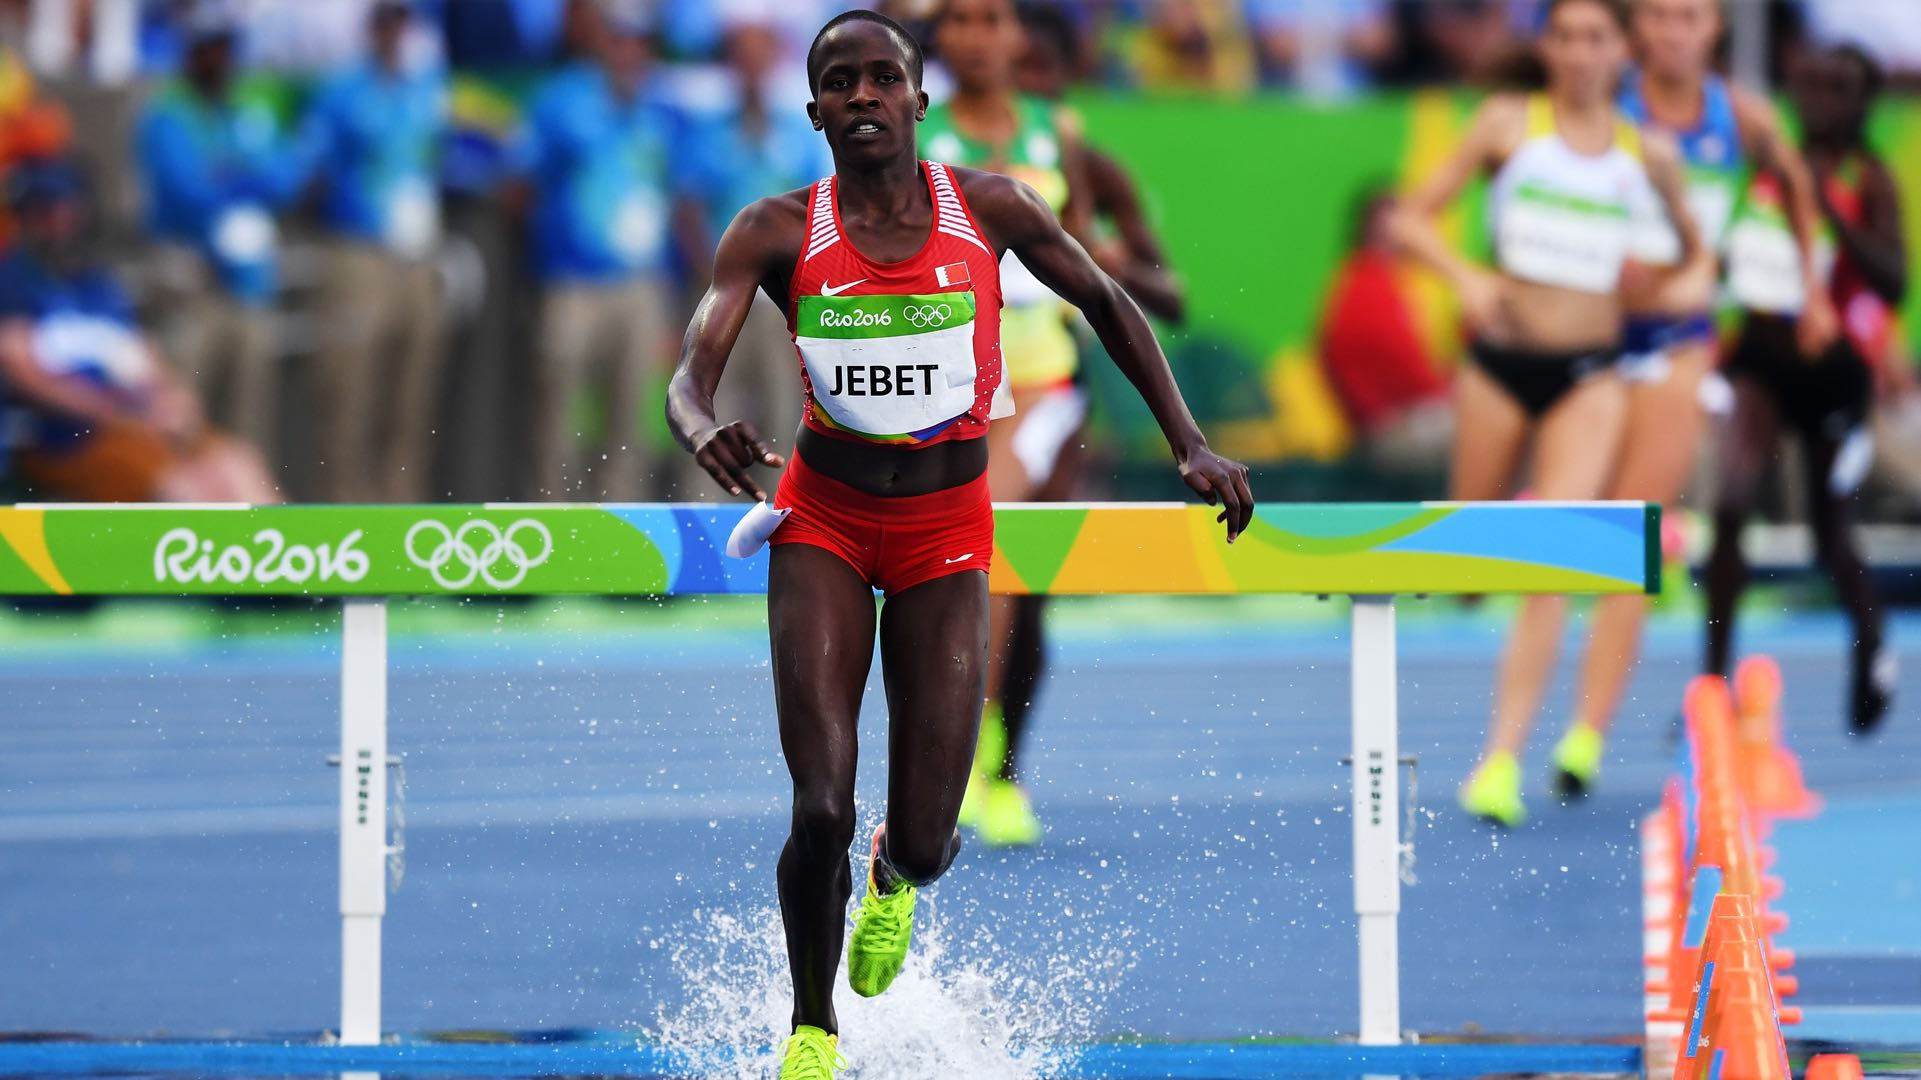 Steeplechase champion Jebet handed four-year ban for doping violation